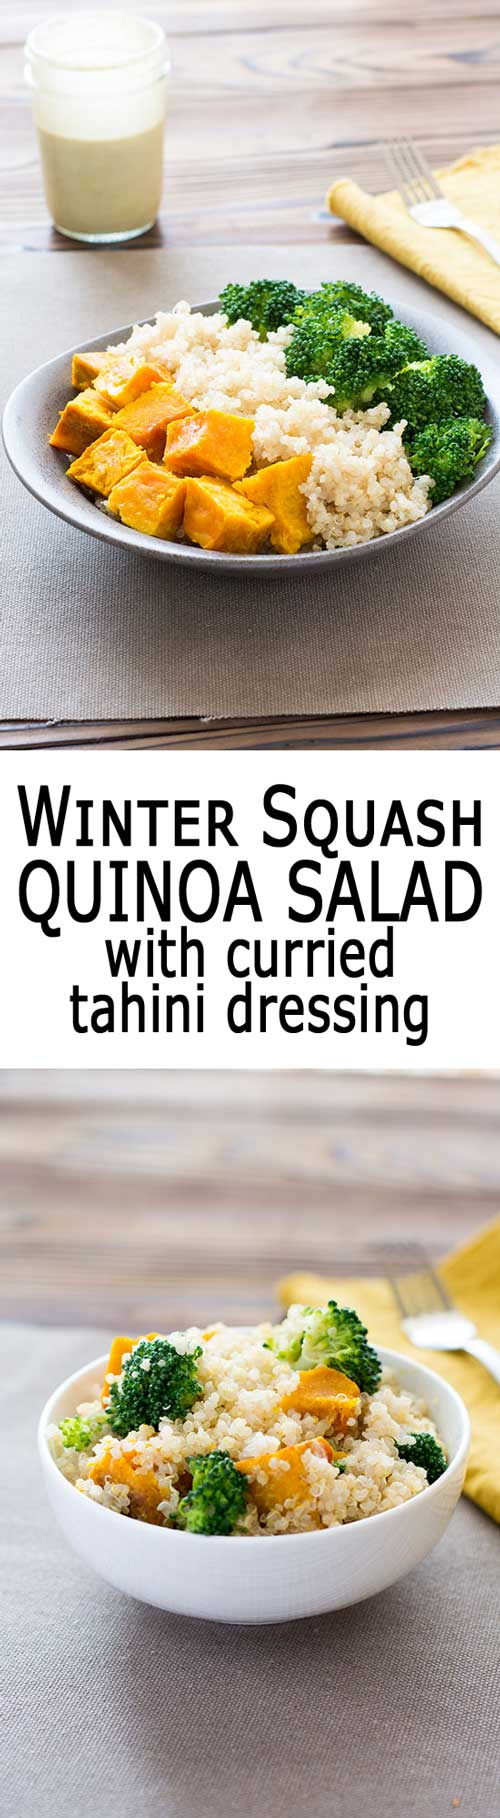 Easy Winter Squash Quinoa Salad with butternut squash, broccoli and a warm tahini dressing!